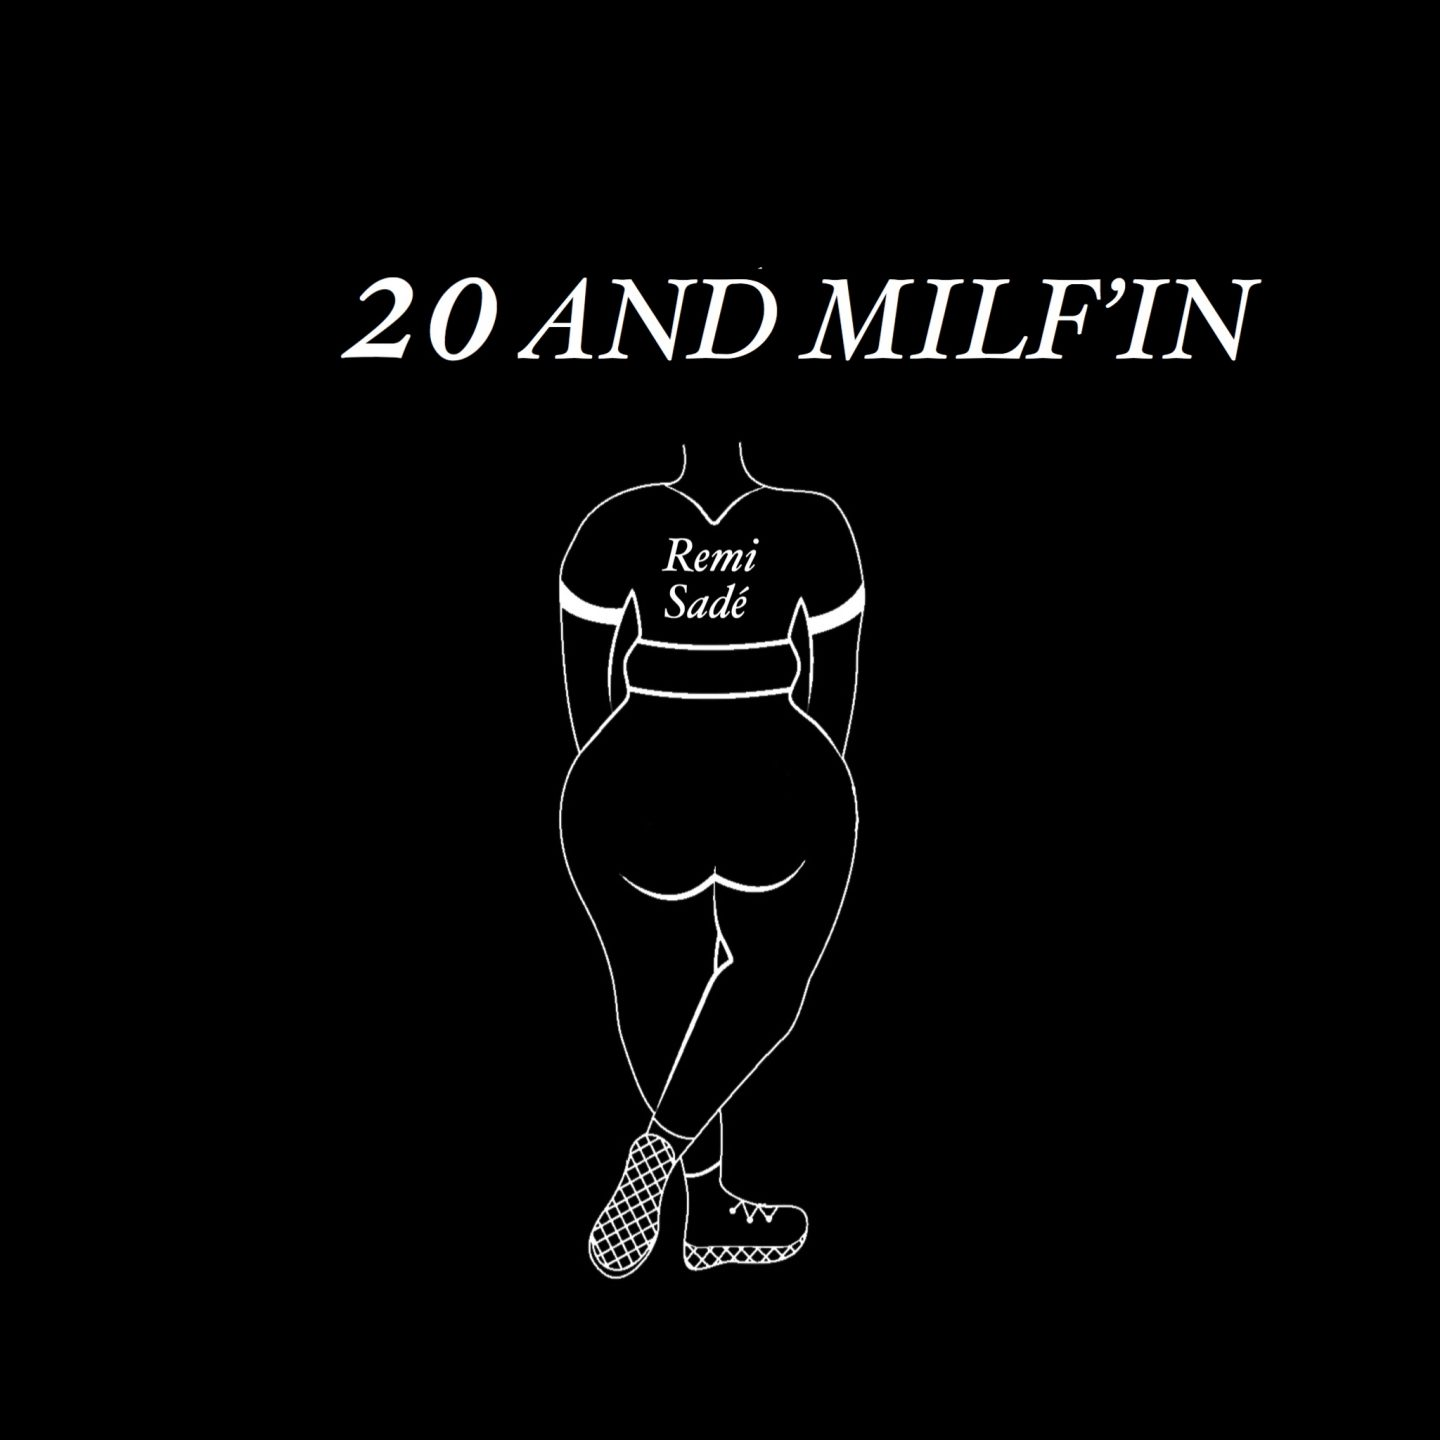 20 and Milf'in